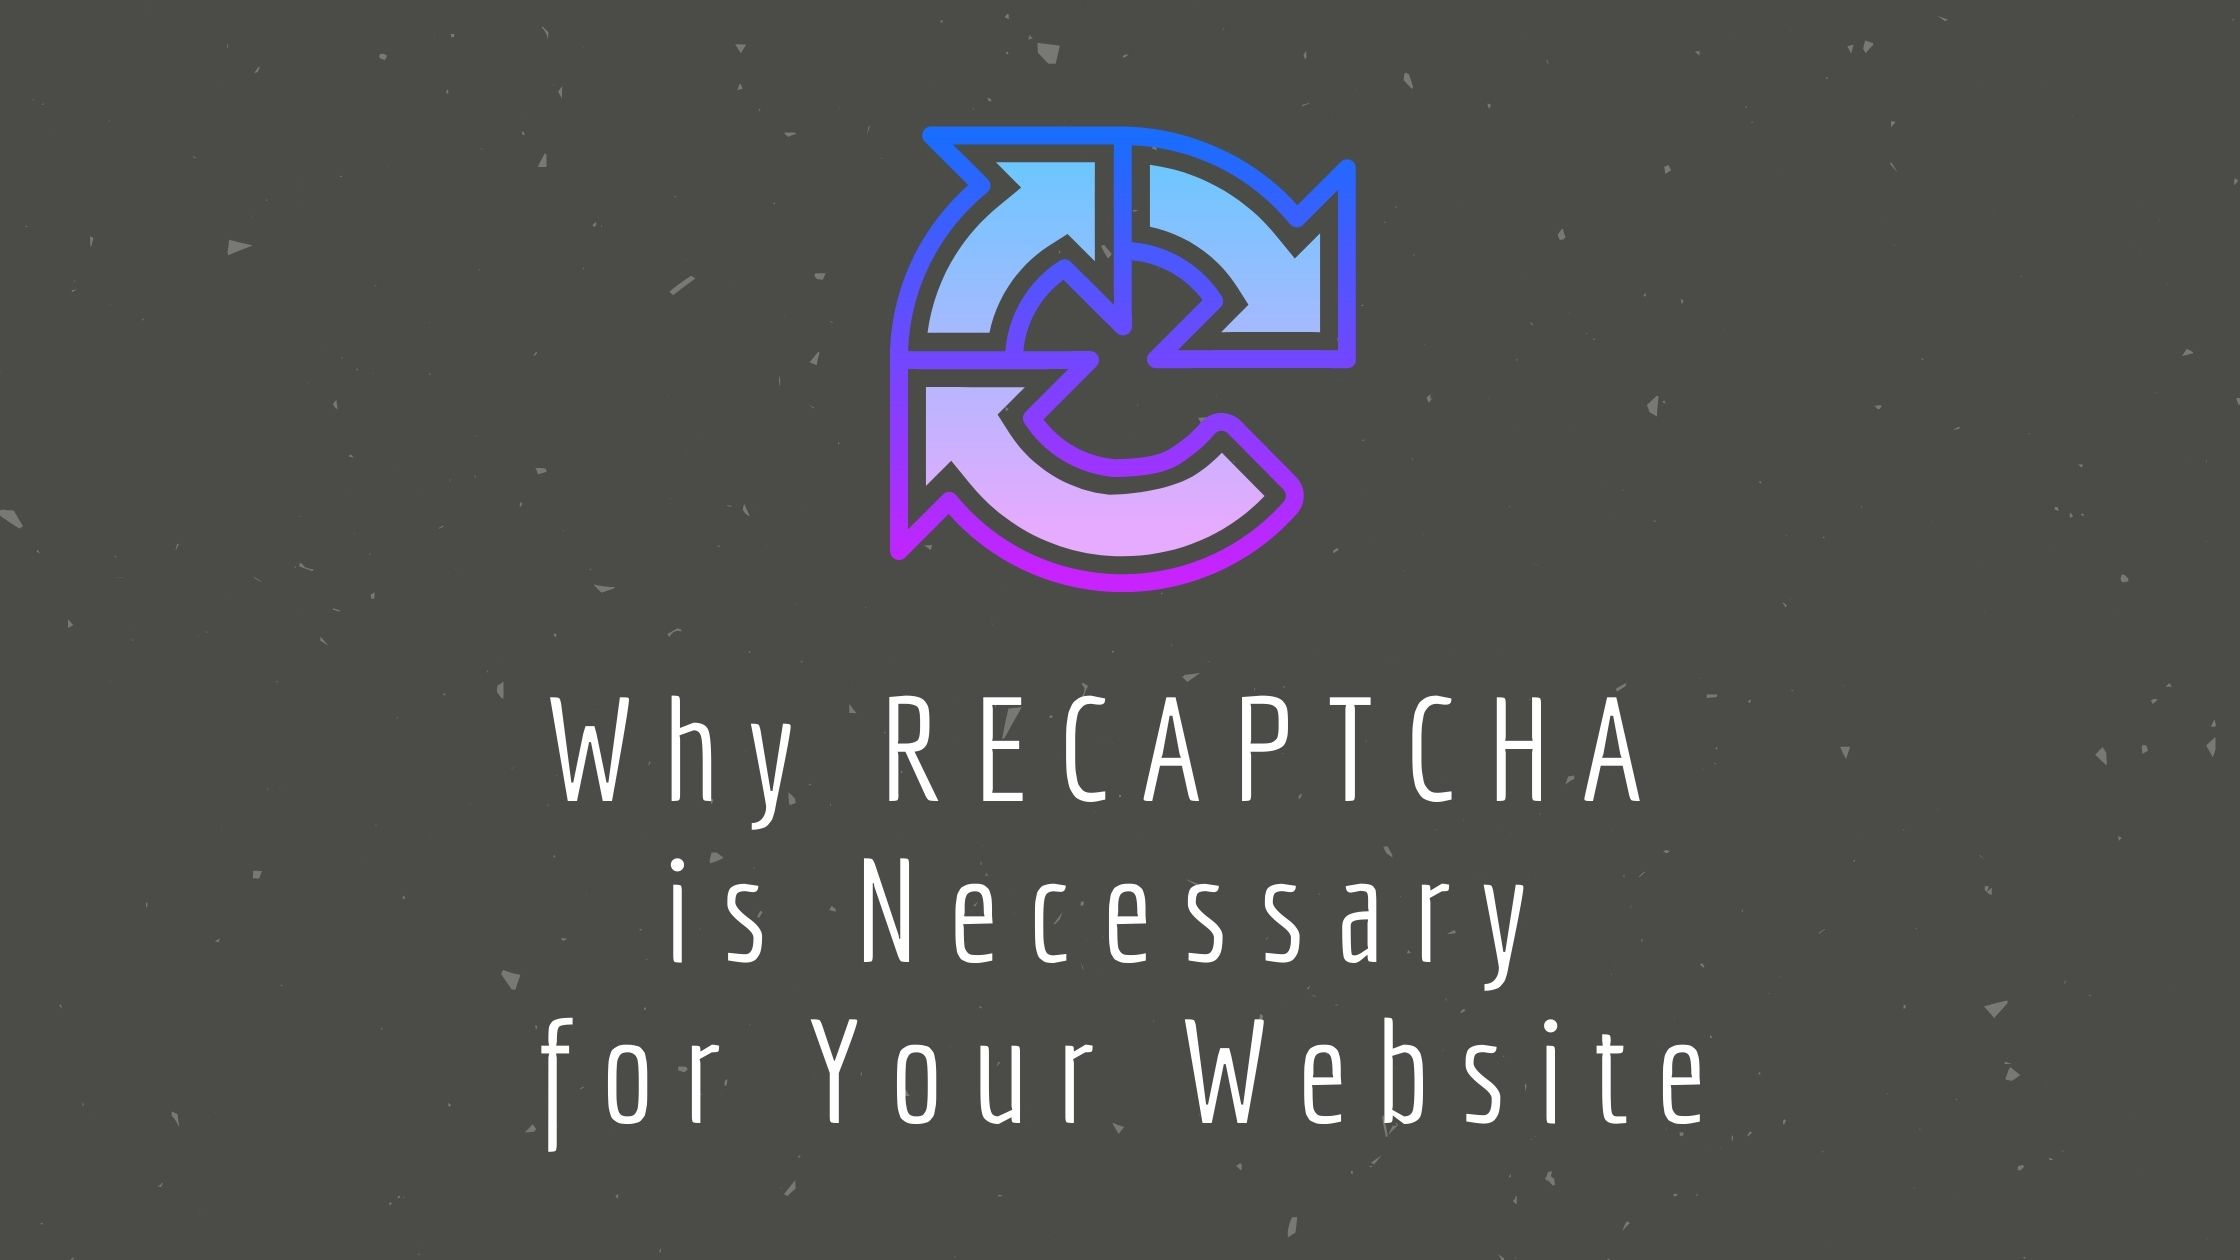 Why RECAPTCHA is Necessary for Your Website